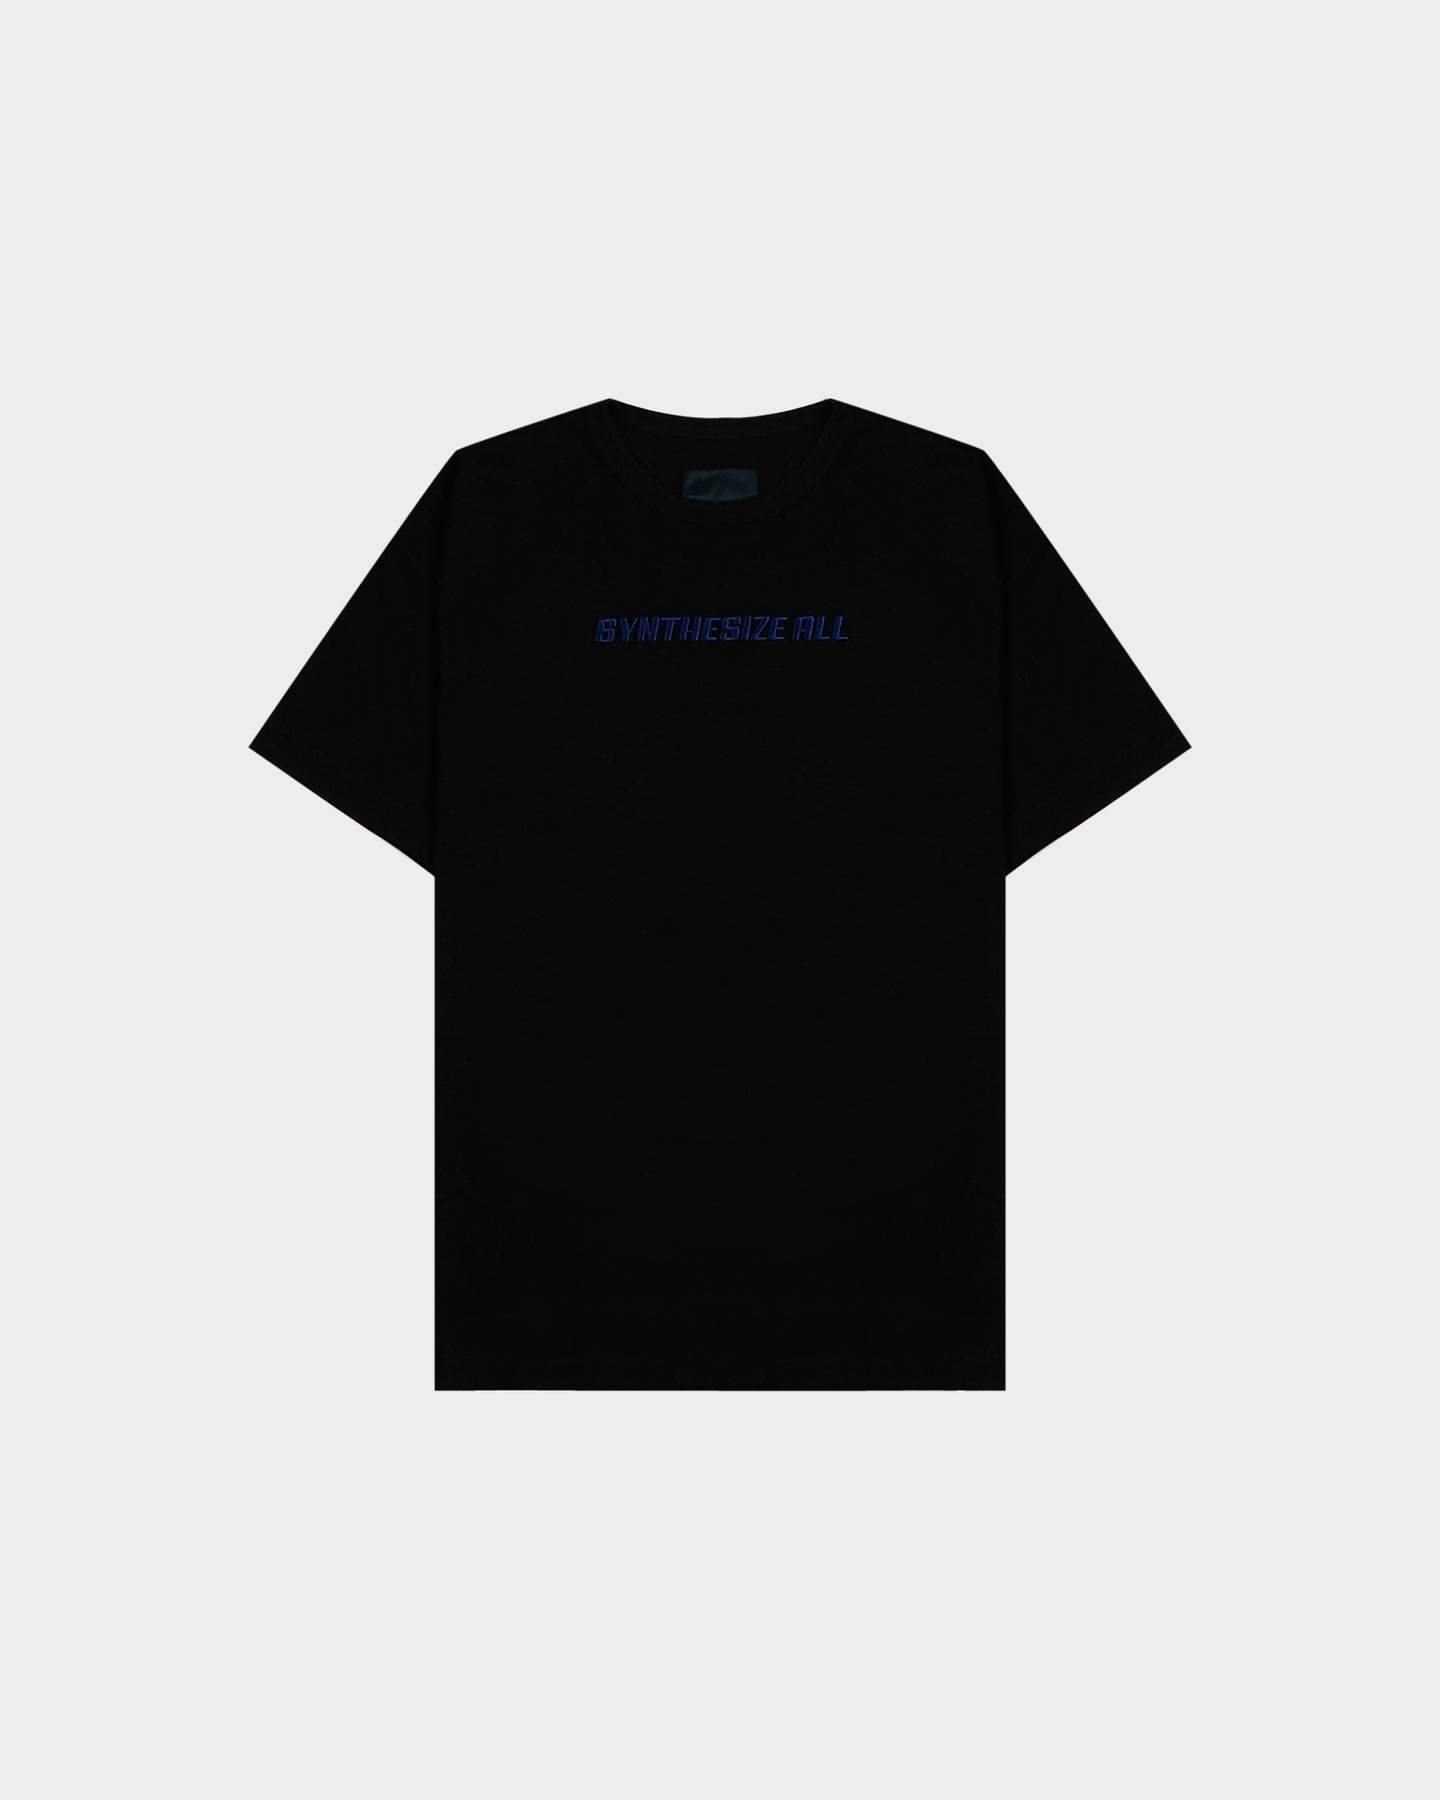 Synthesize T-Shirt